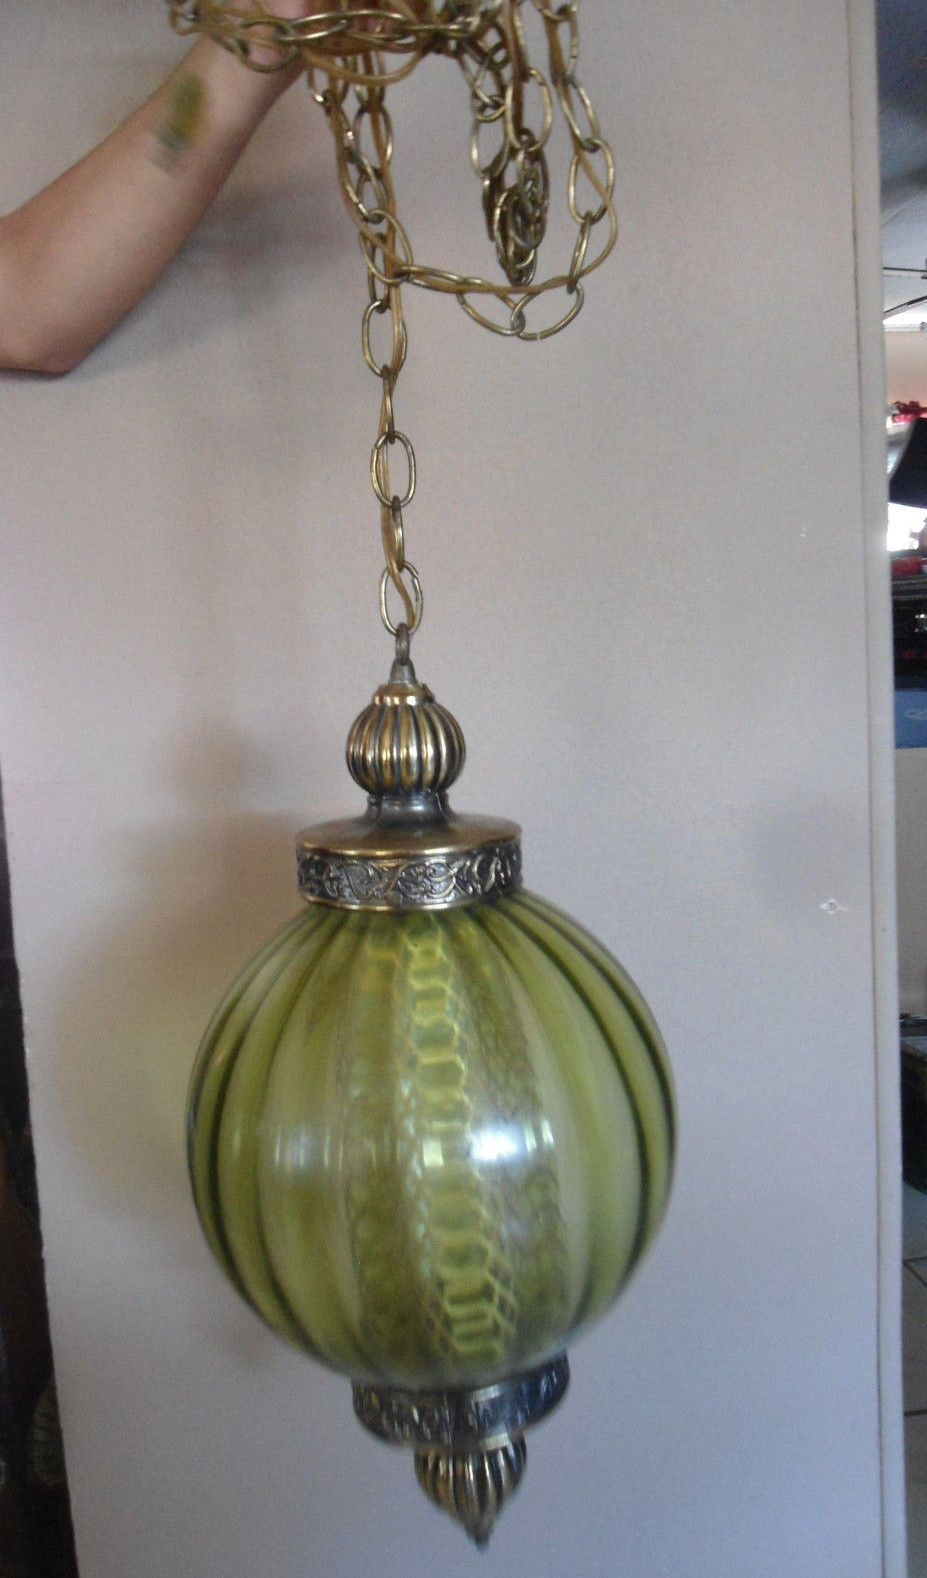 Large Green Globe Swag Lamp Vintage Round Rippled Glass Brass Hanging Light Swag Lamp Hanging Lights Antique Floor Lamps